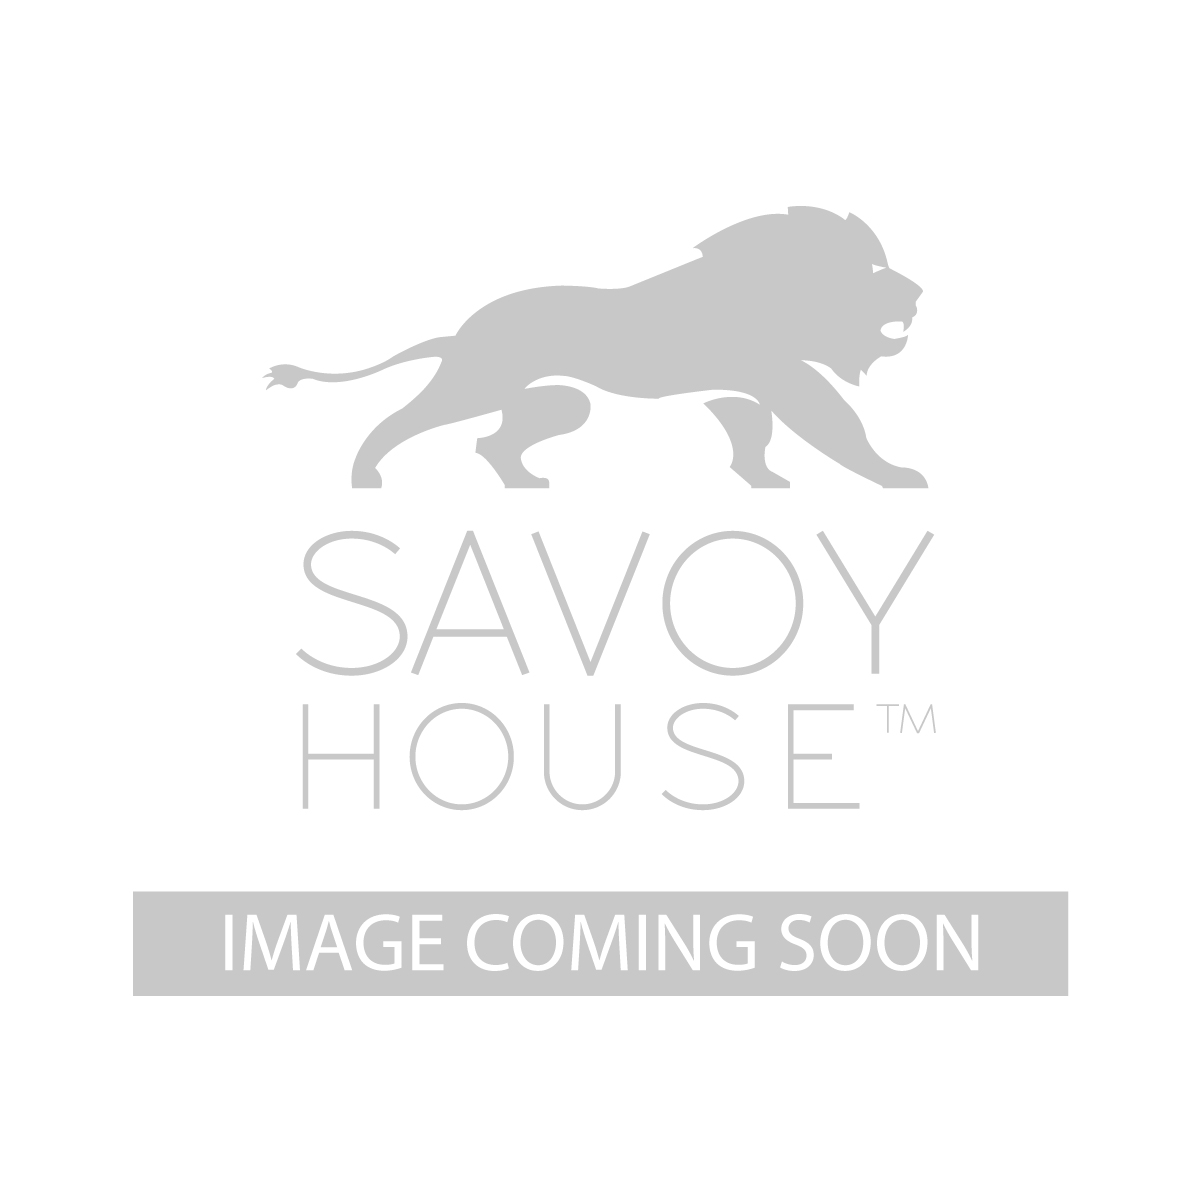 1 9260 6 112 carrolton 6 light chandelier by savoy house for Www savoyhouse com